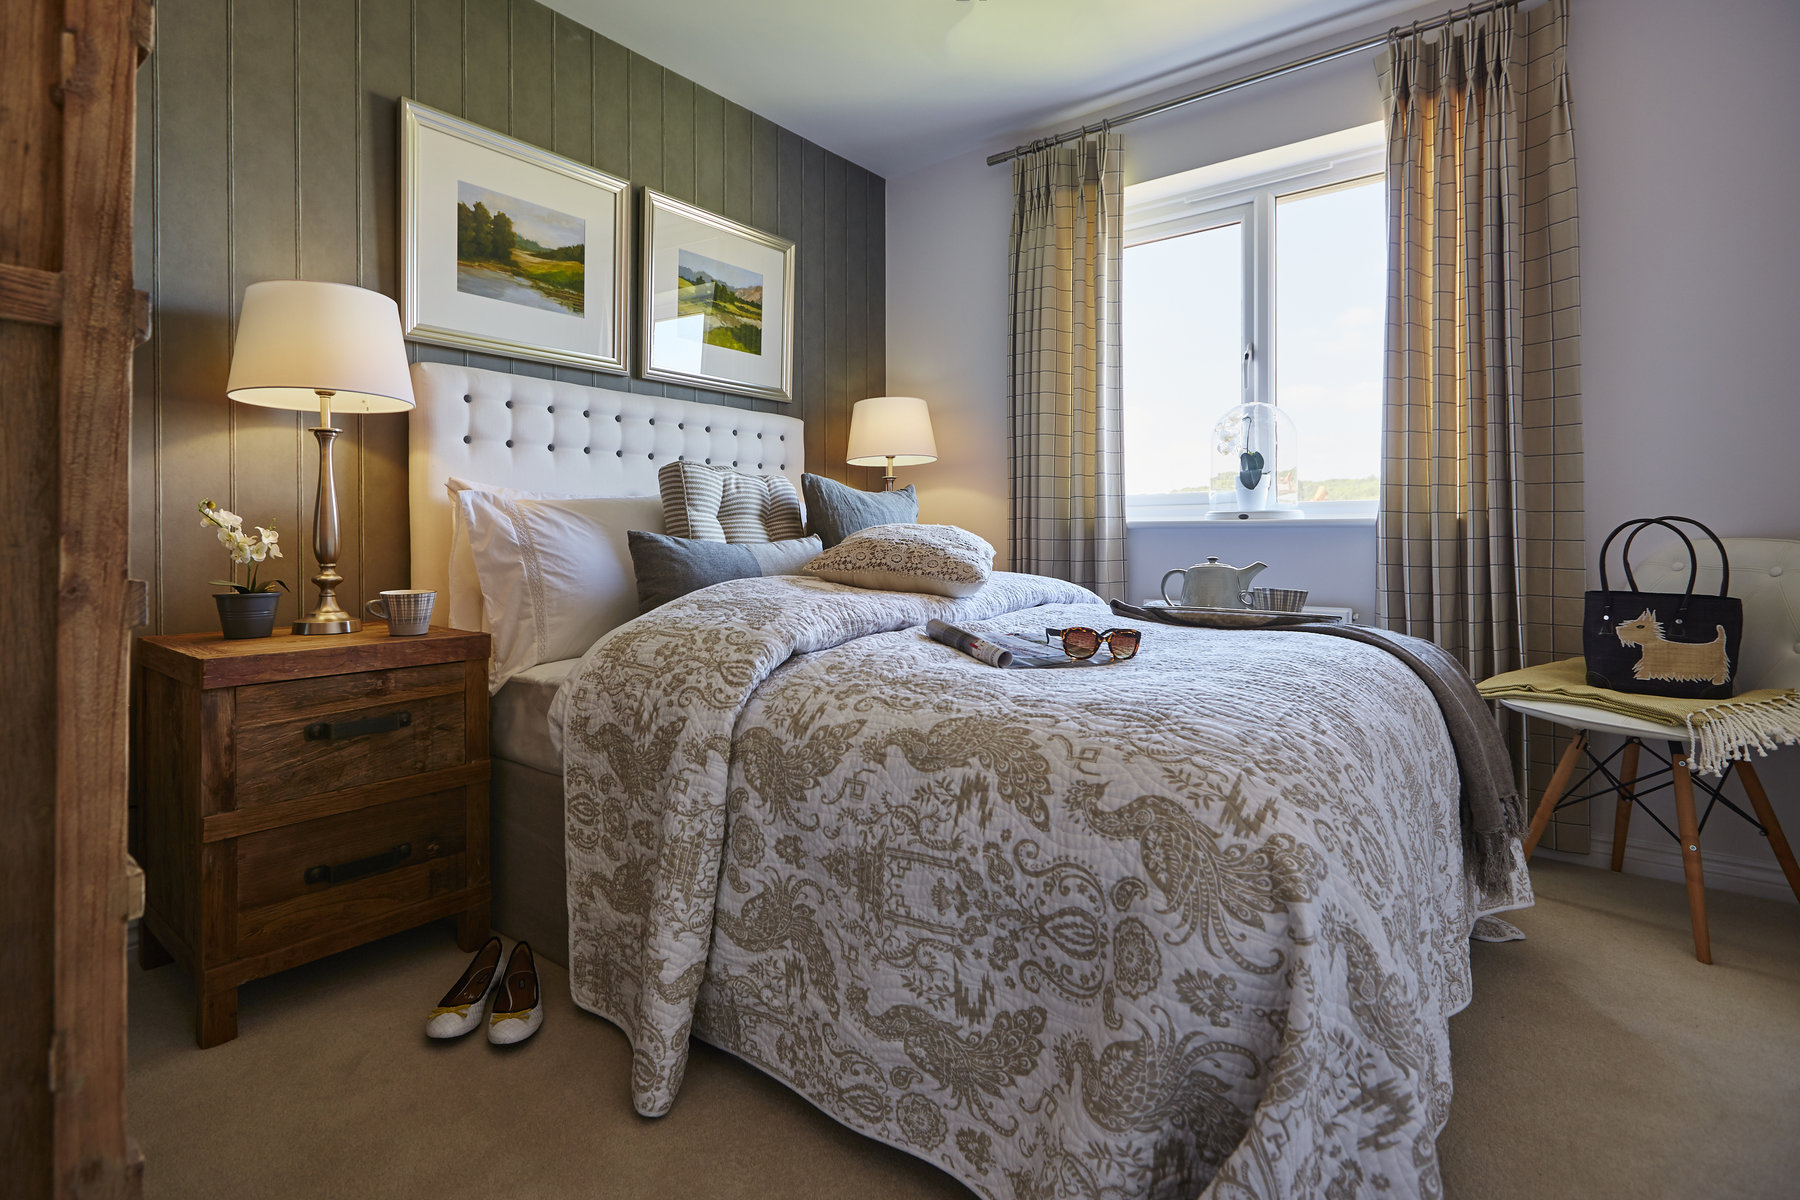 rsz_1tw_mids_burlington_fields_shifnal_pa34_gosford_bedroom_2